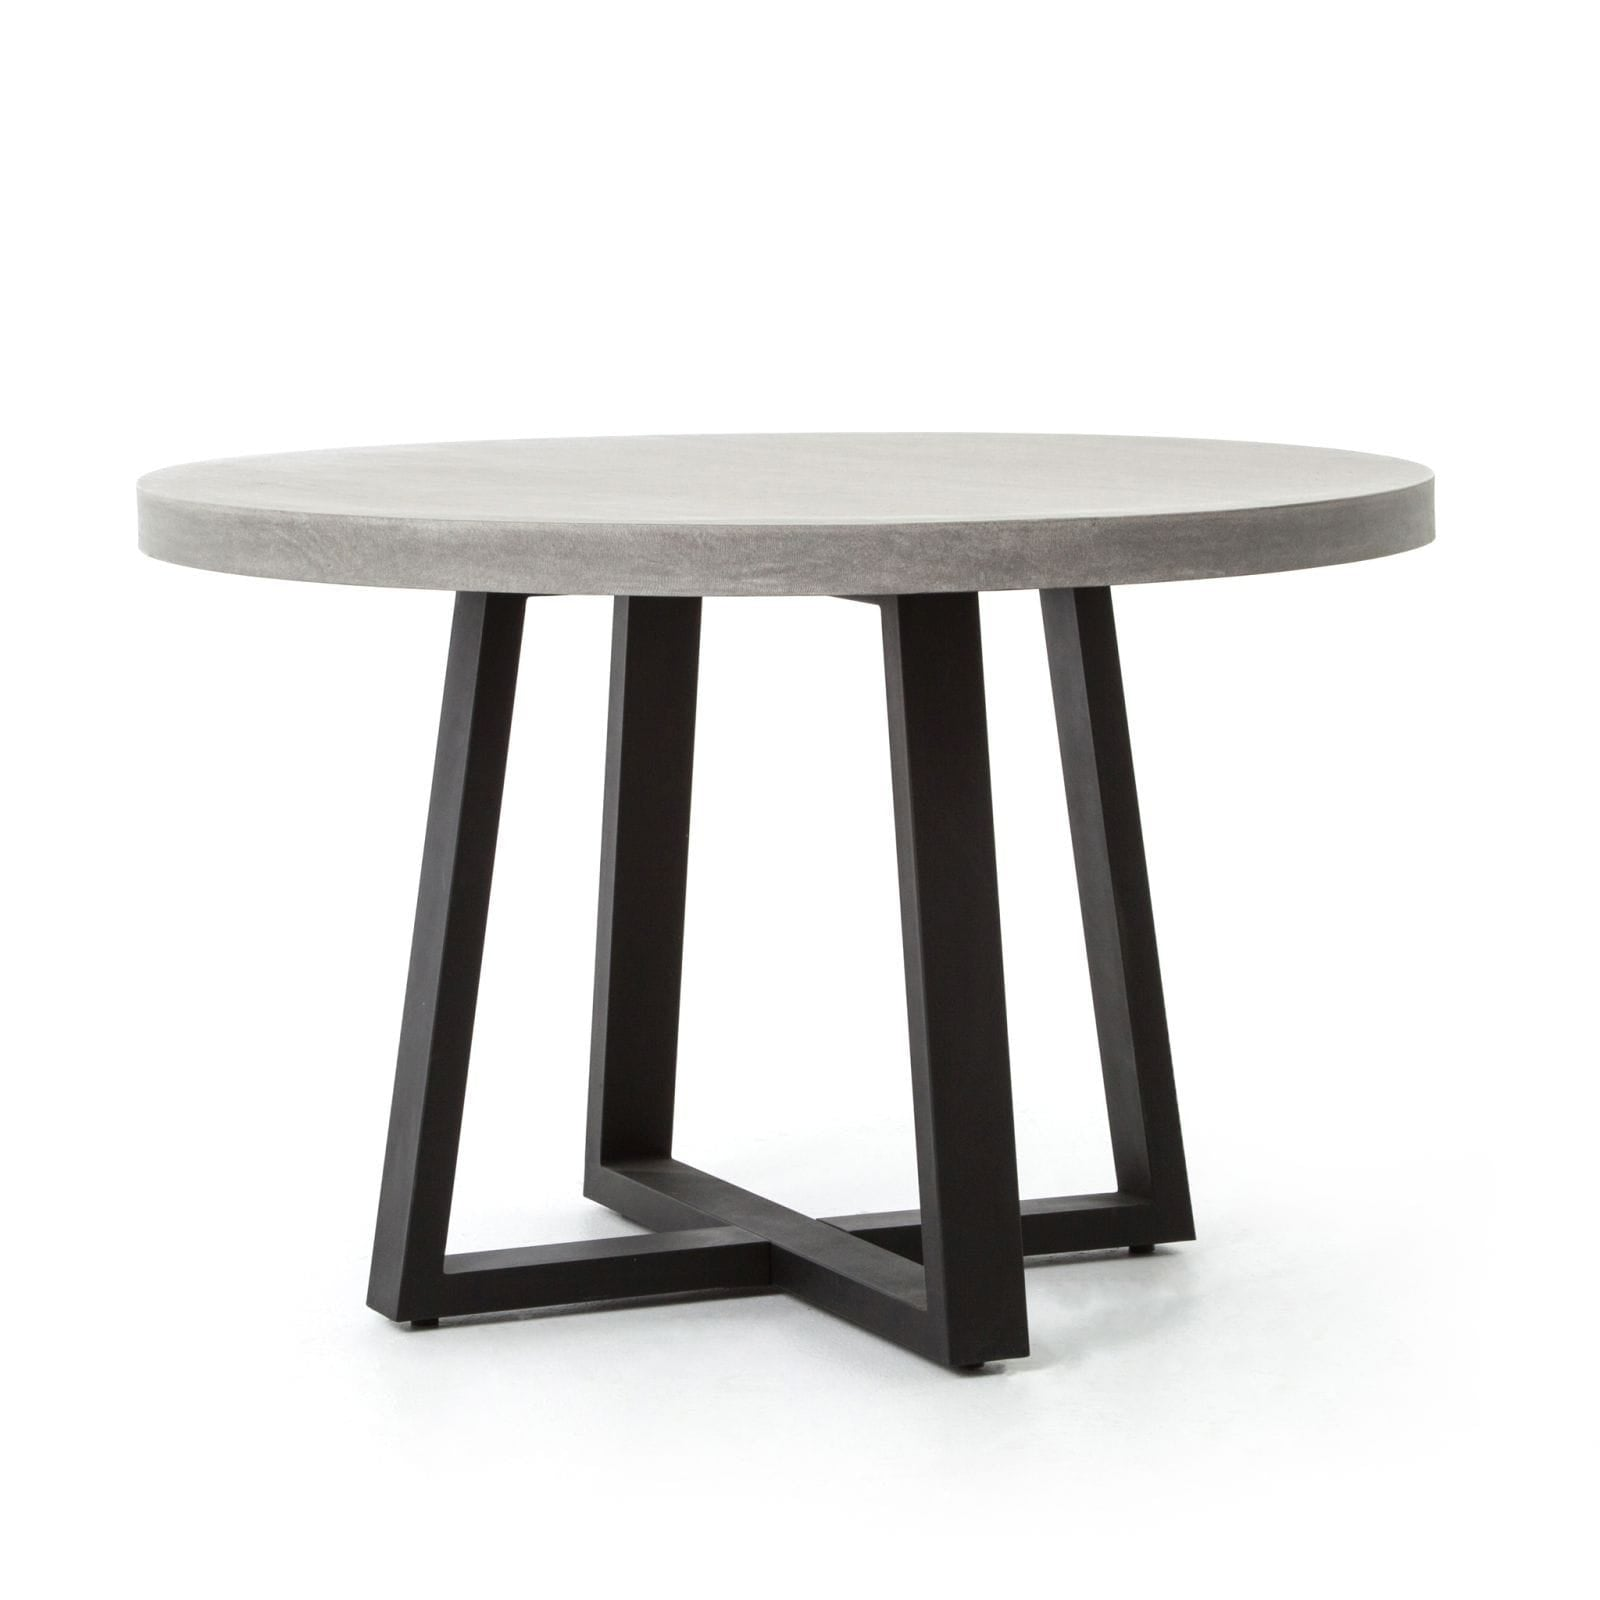 Four Hands Cyrus Round Dining Table - Black, Light Grey - 48